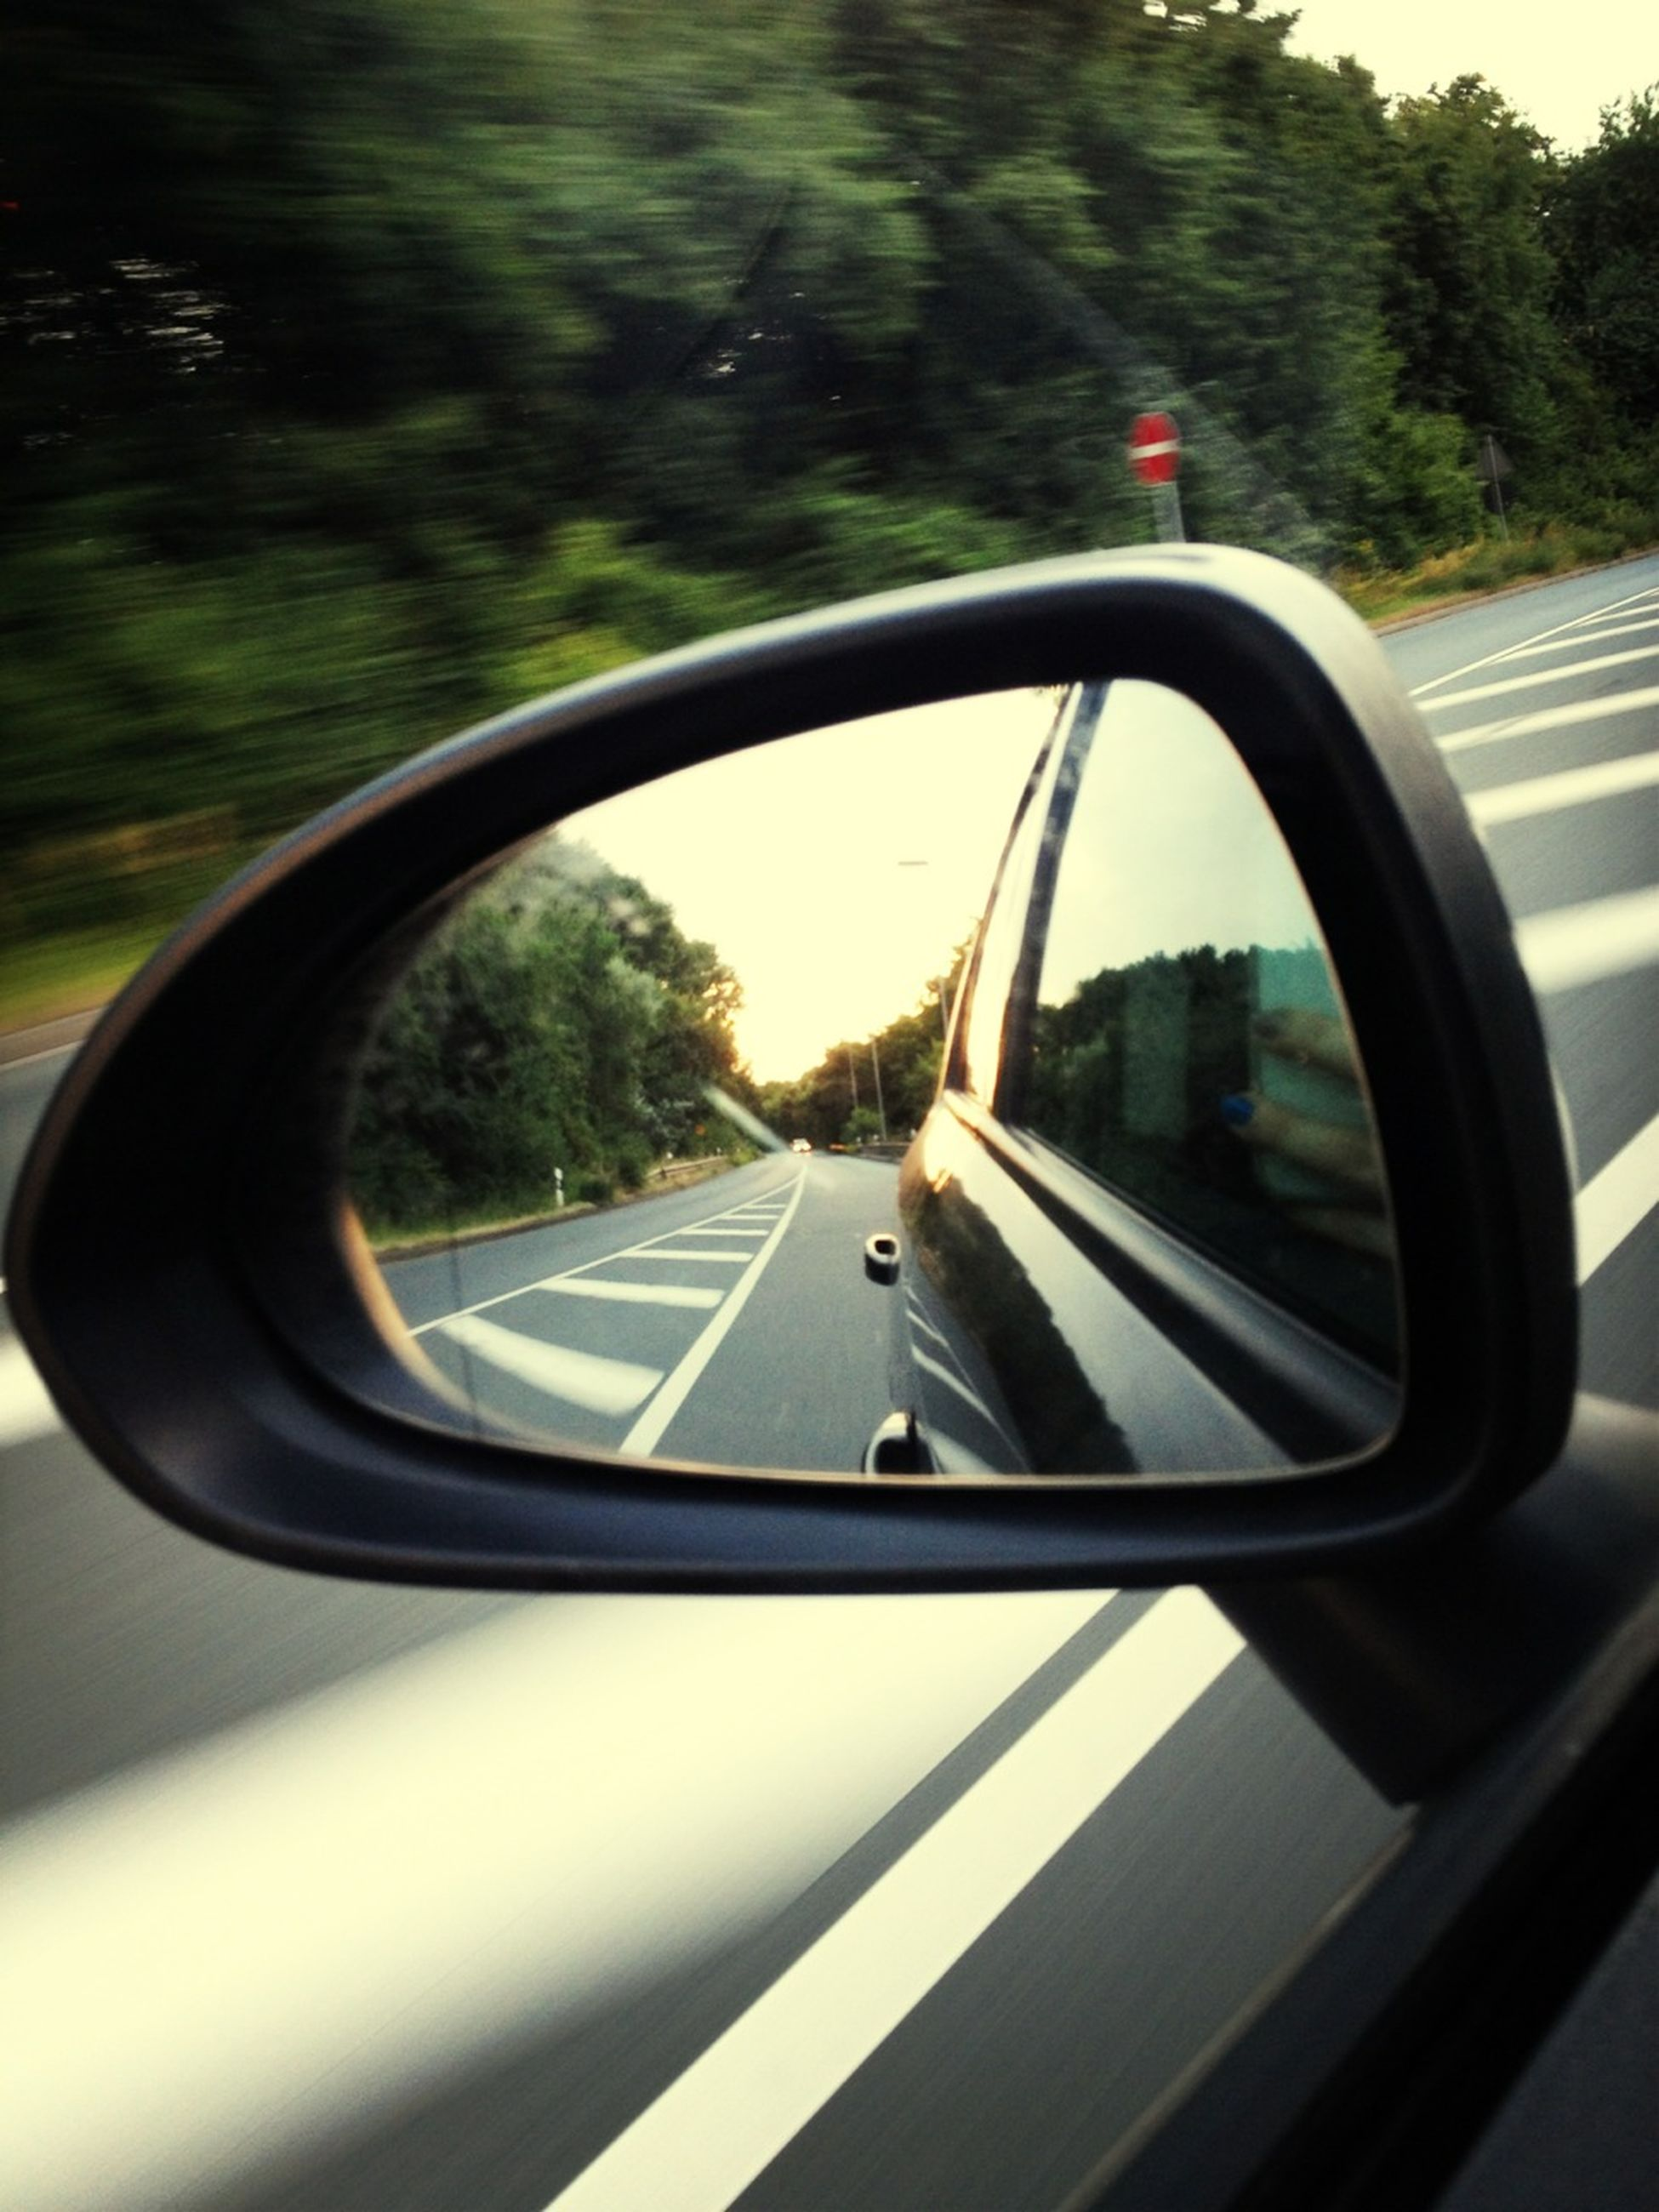 transportation, mode of transport, land vehicle, car, side-view mirror, vehicle interior, glass - material, reflection, road, transparent, travel, windshield, tree, car interior, on the move, part of, road marking, road trip, window, street